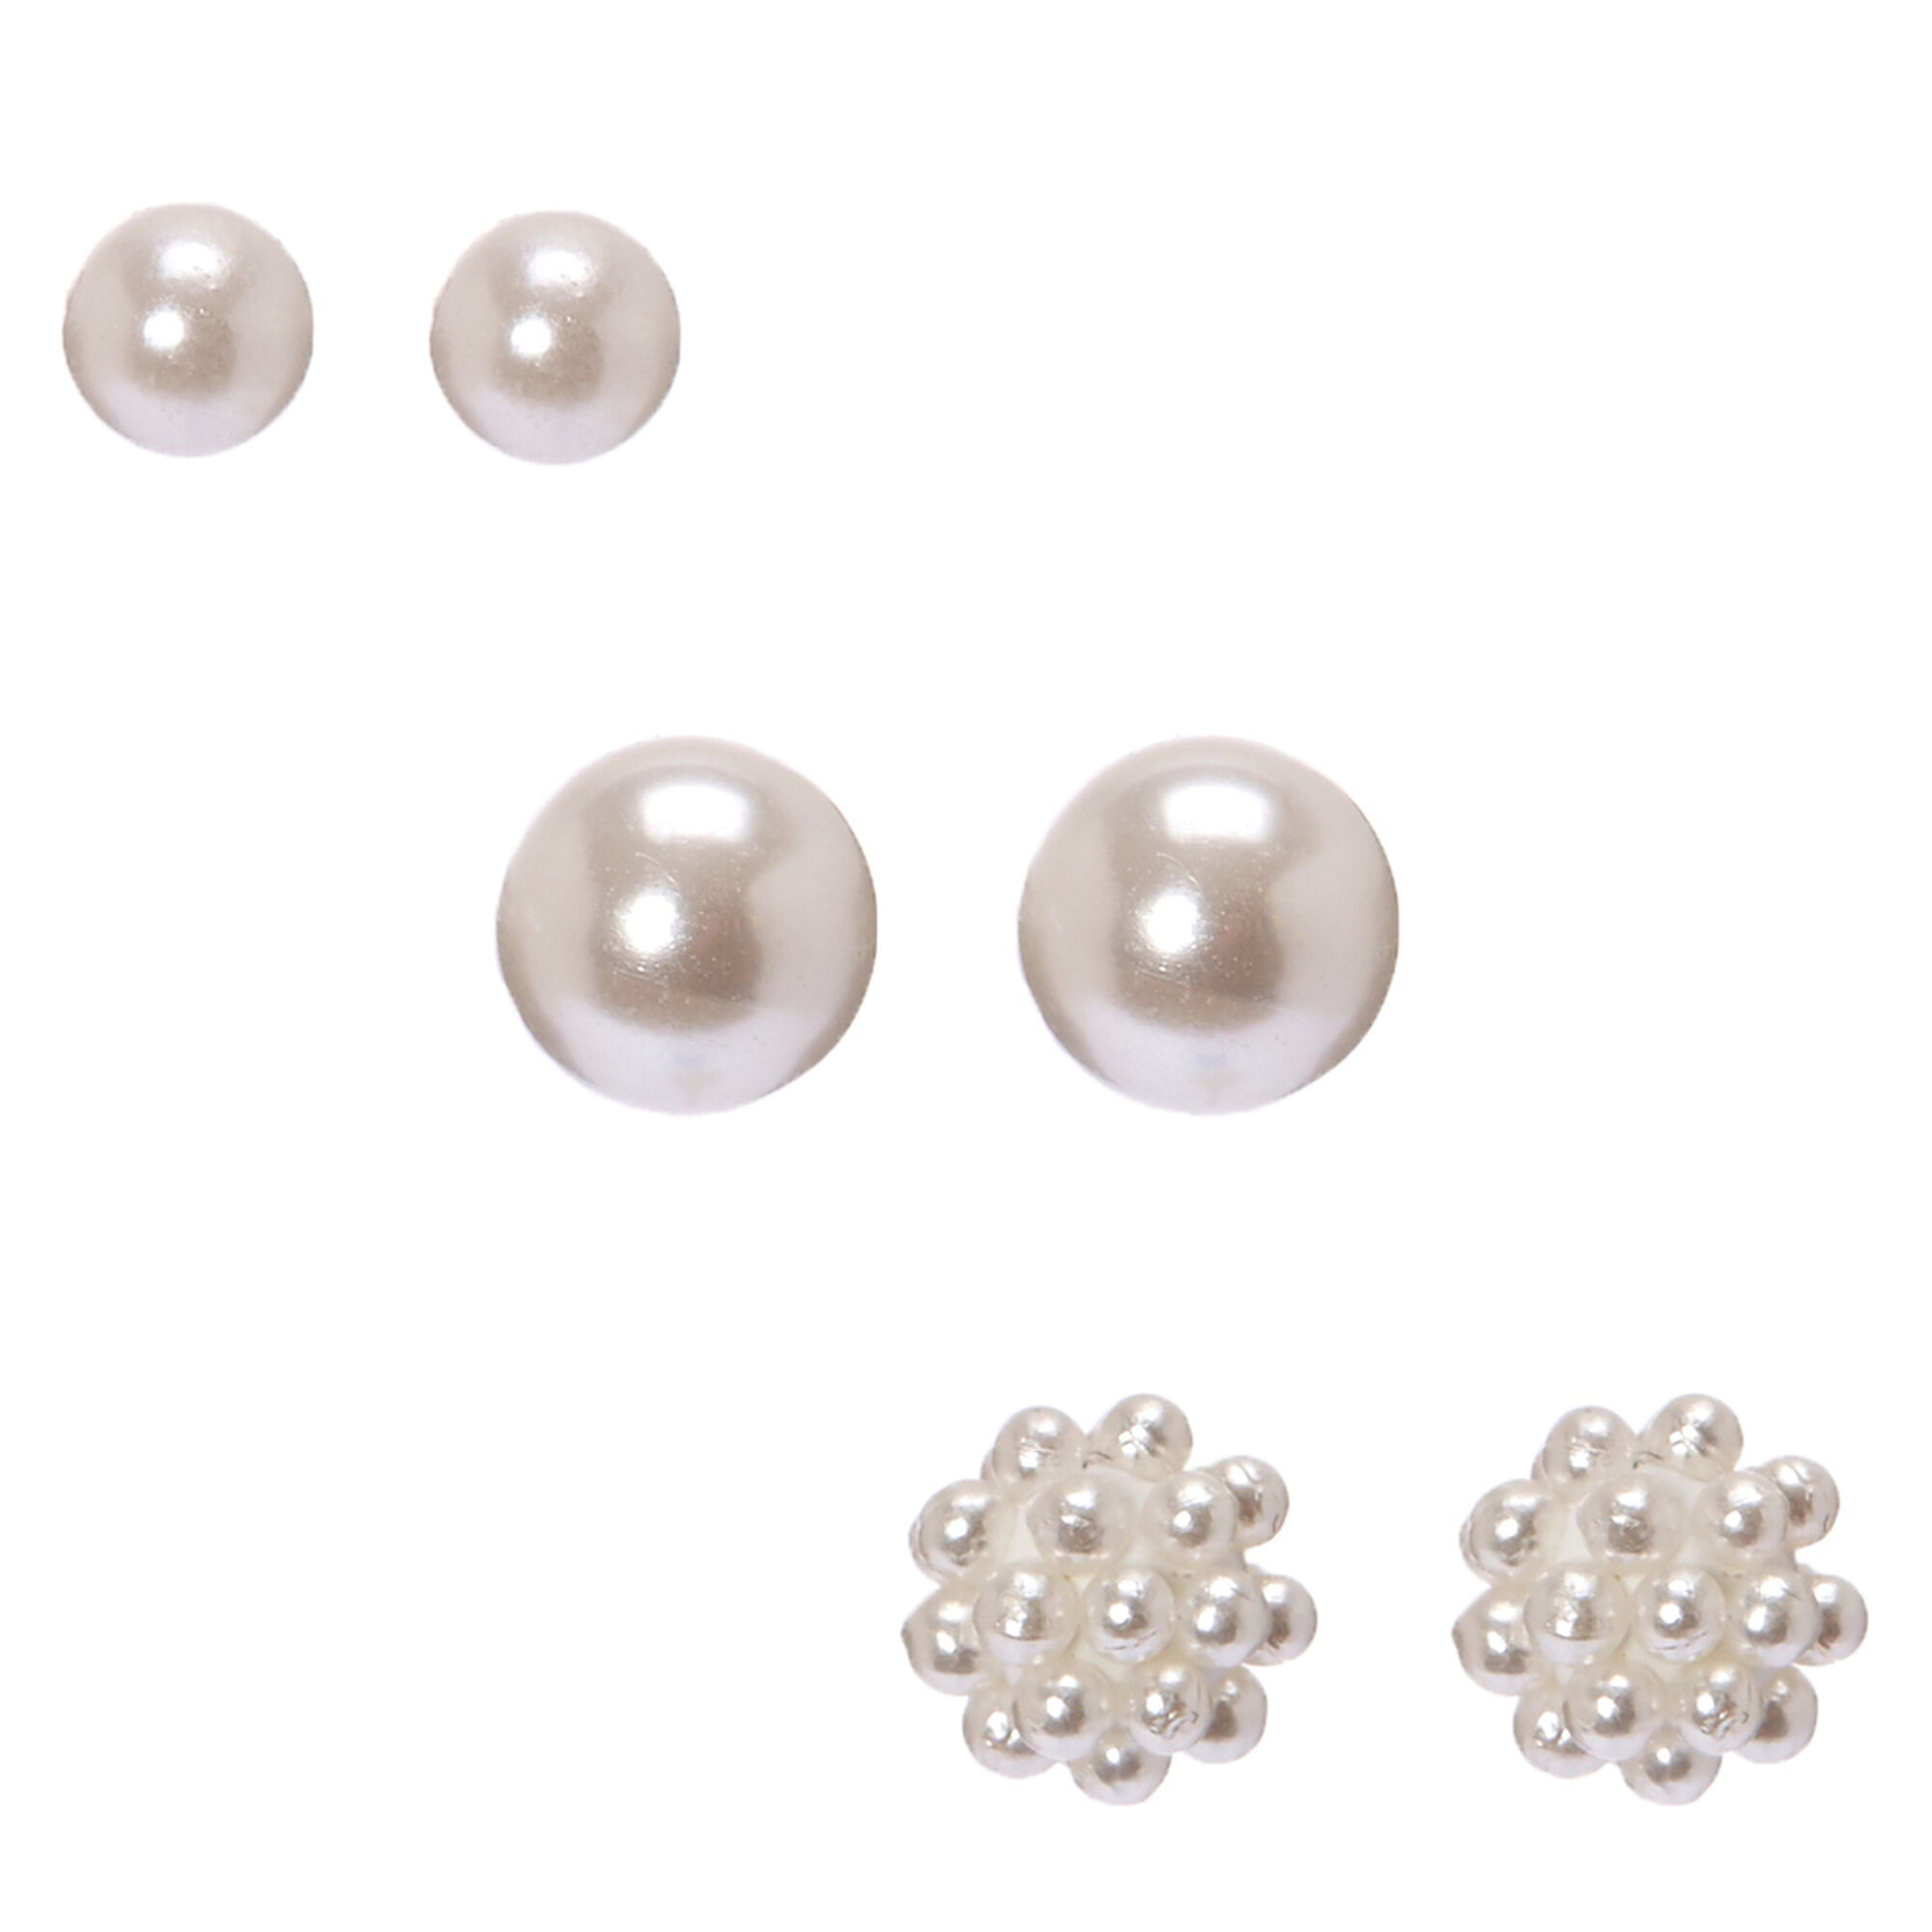 arlette ora earrings pearl pearls collections stud of classic white allure the jewellery small gold